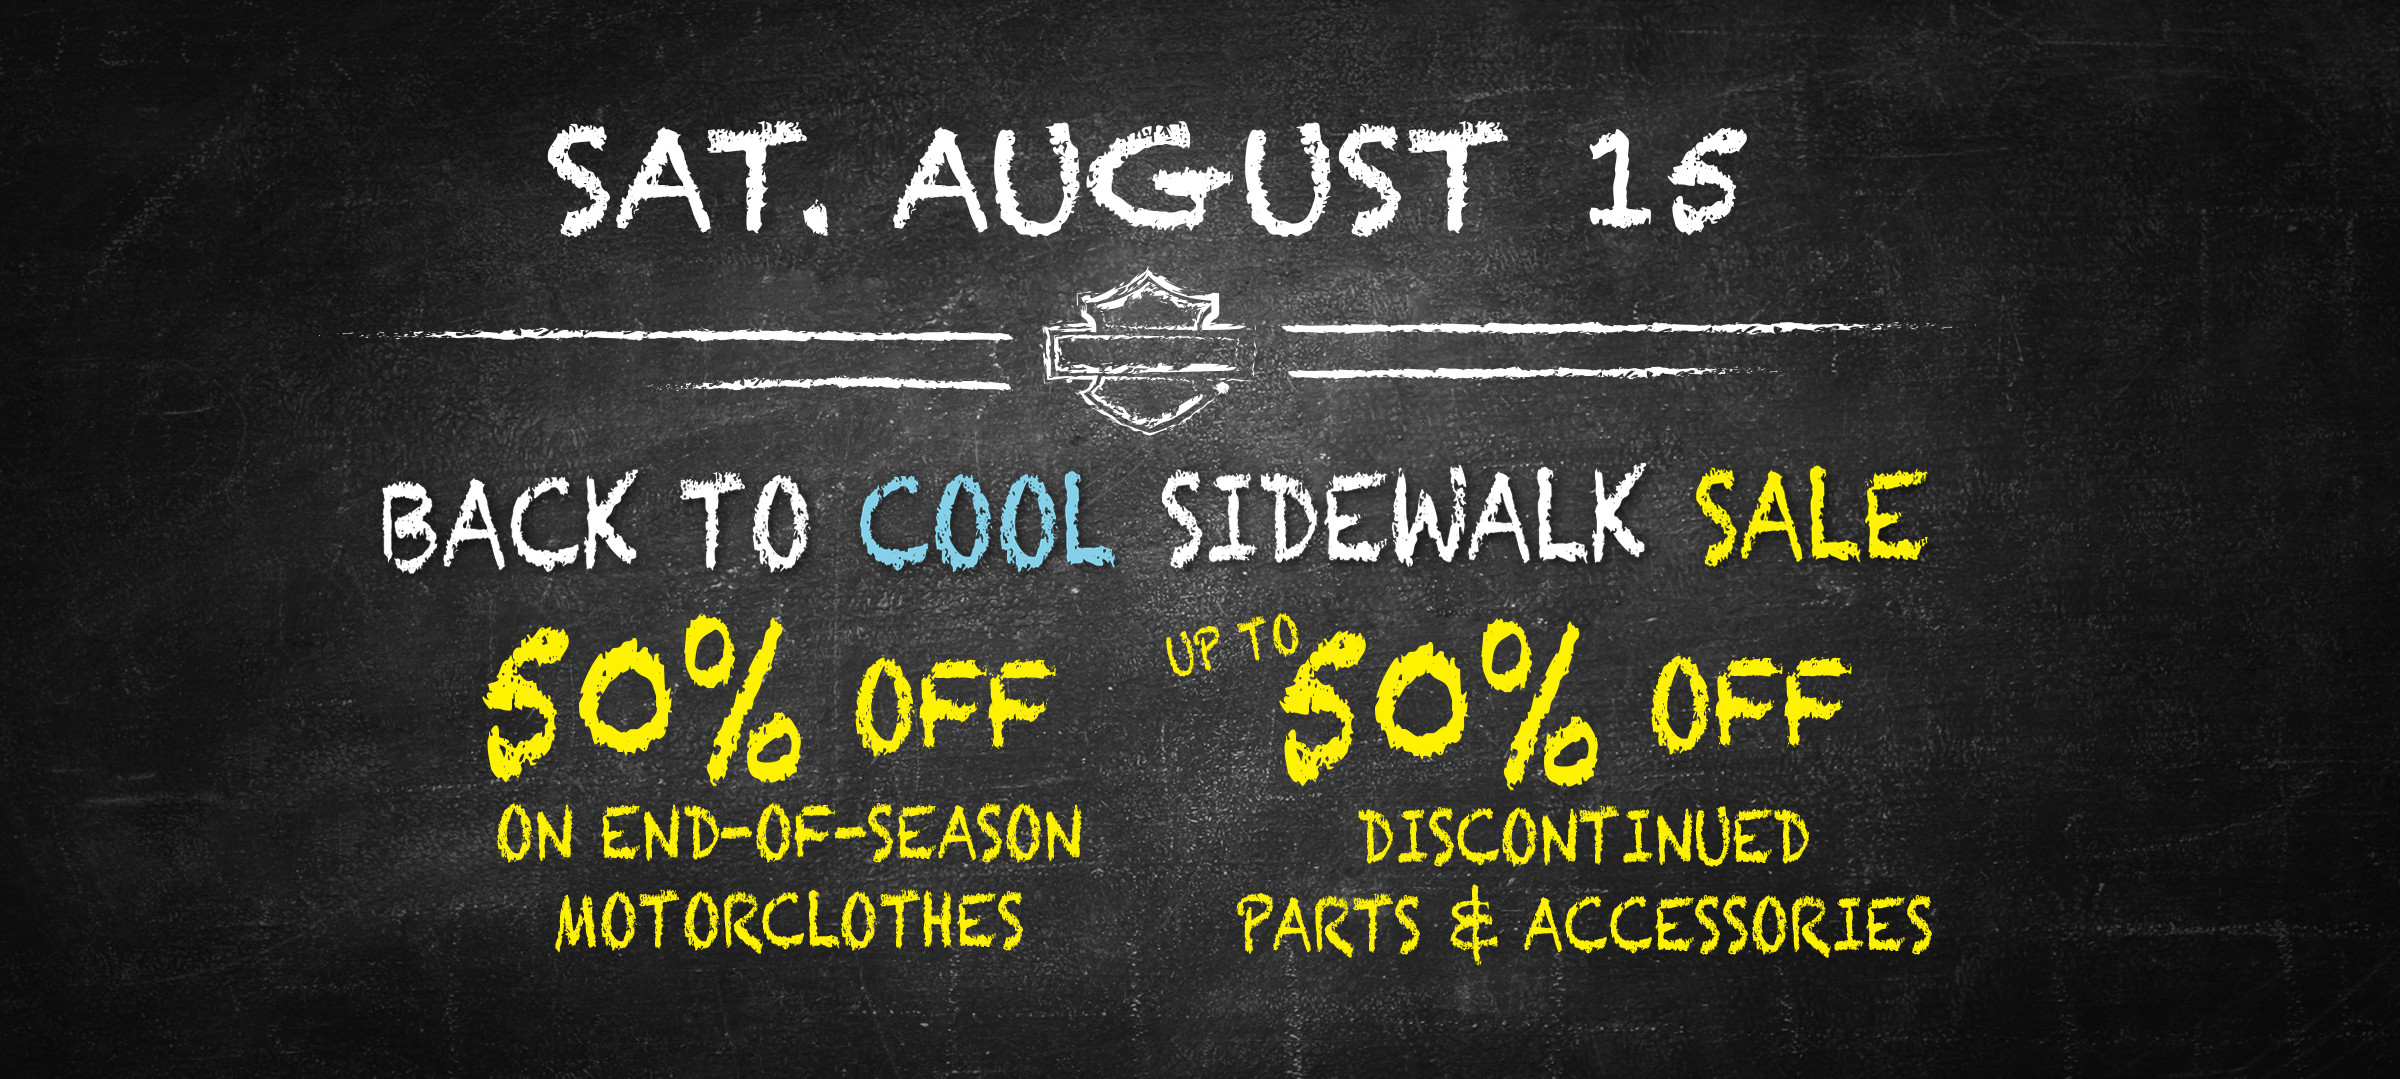 get back to cool sidewalk sale